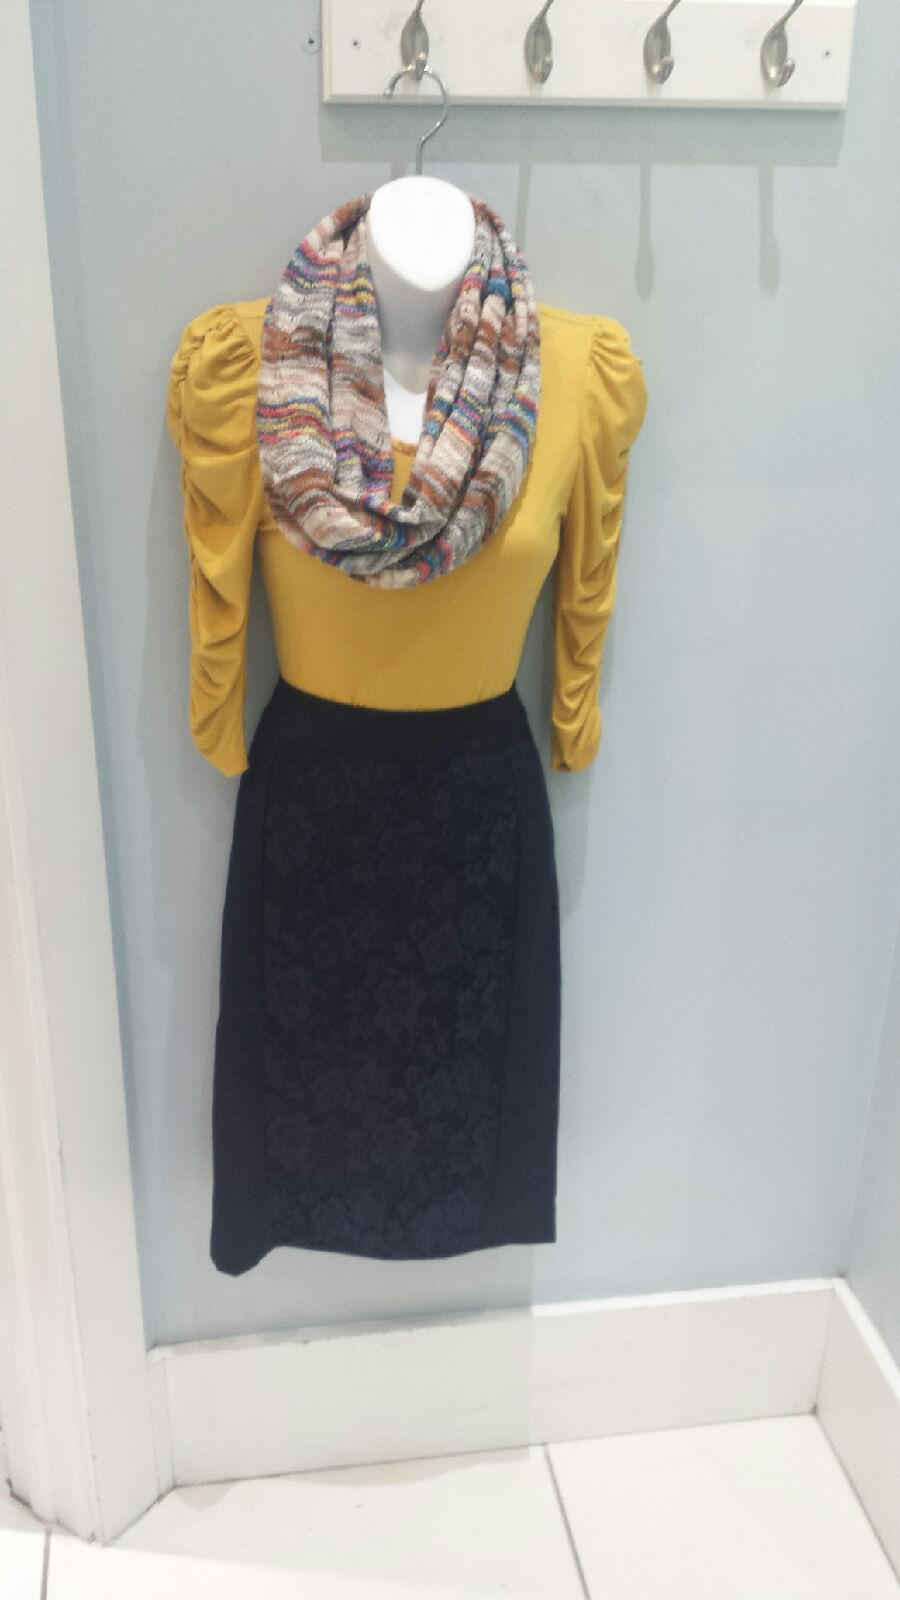 Thin satin collar top $14.99, Mikarose lace panel skirt $19.99, knitted scarf $16.99